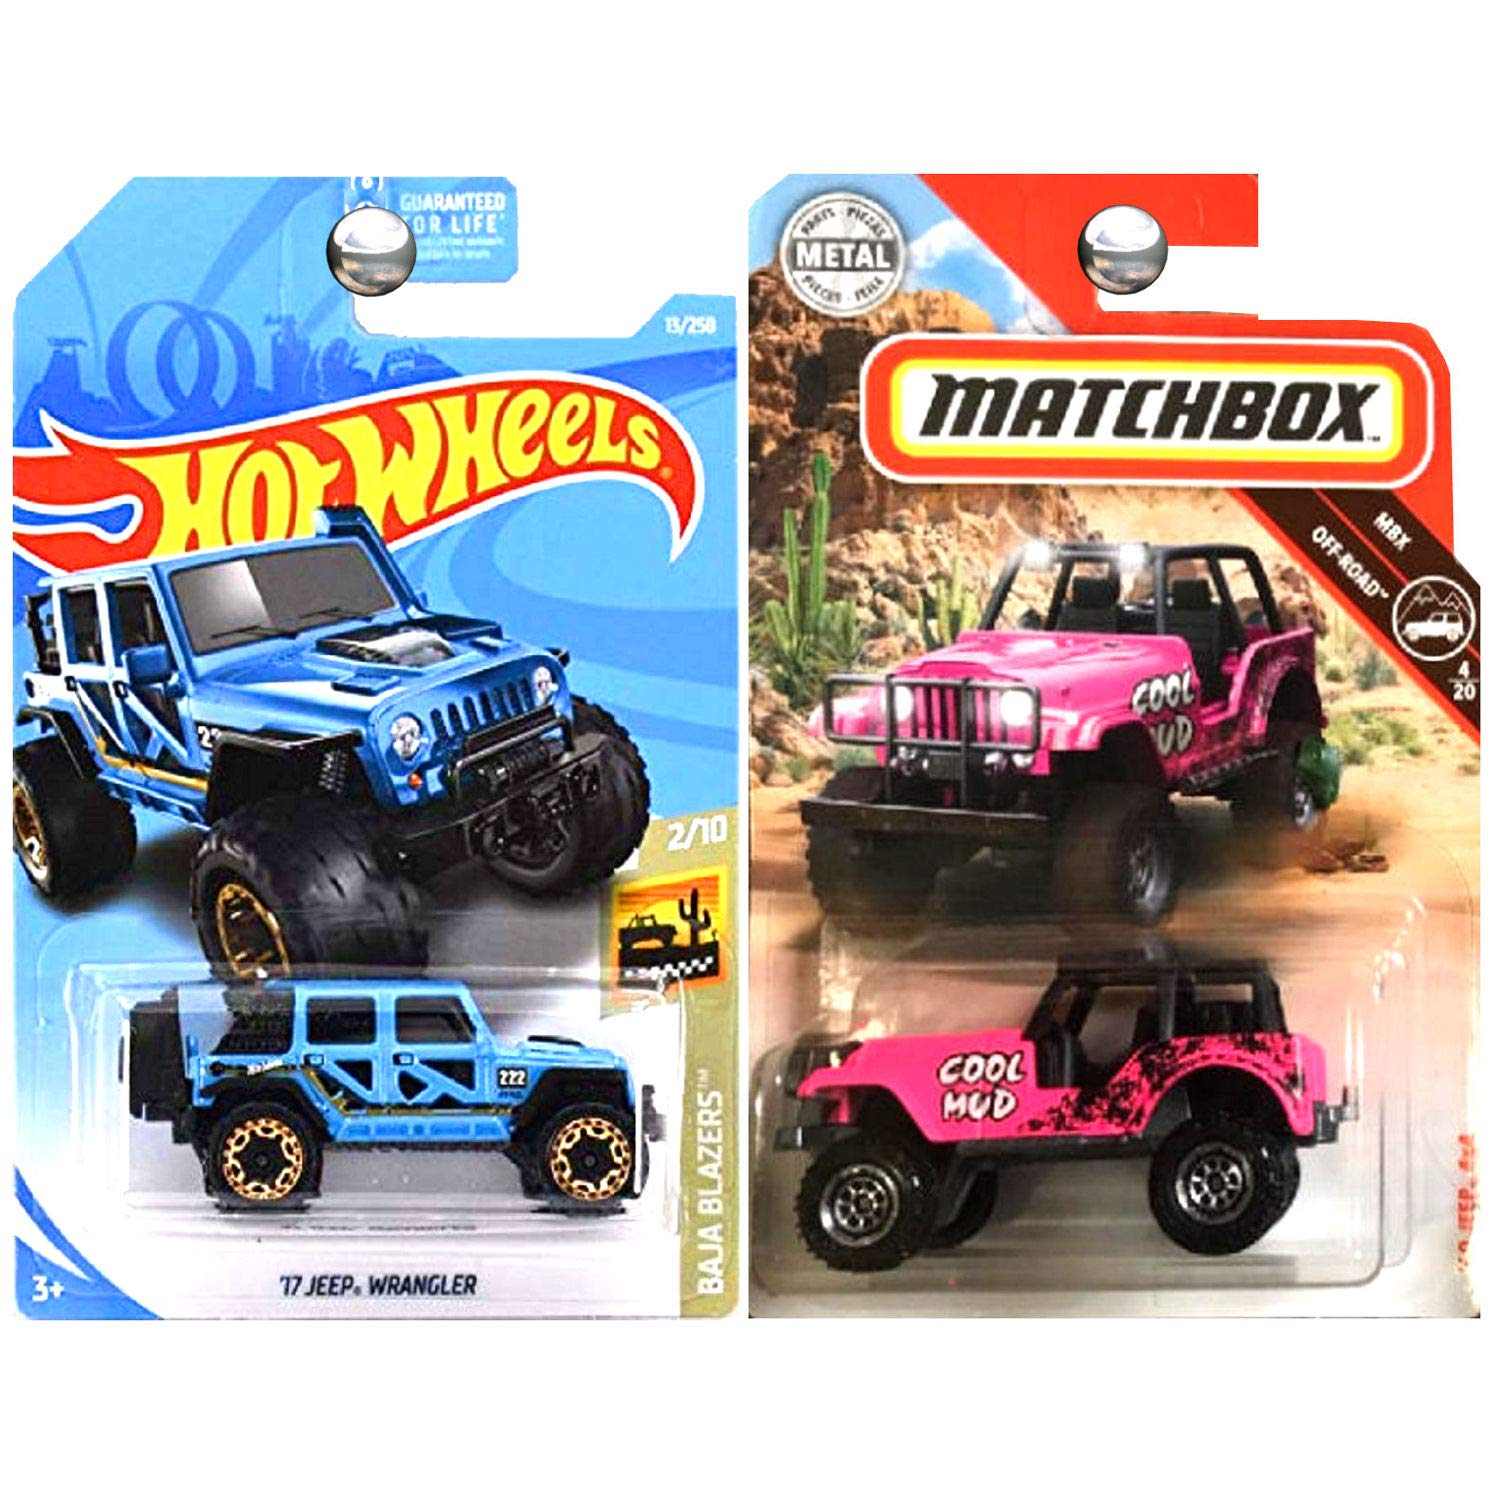 Jeep Wrangler Off Road >> Hot Wheels Matchbox 1960 Jeep 4x4 Pink And 2017 Jeep Wrangler Blue Set Of 2